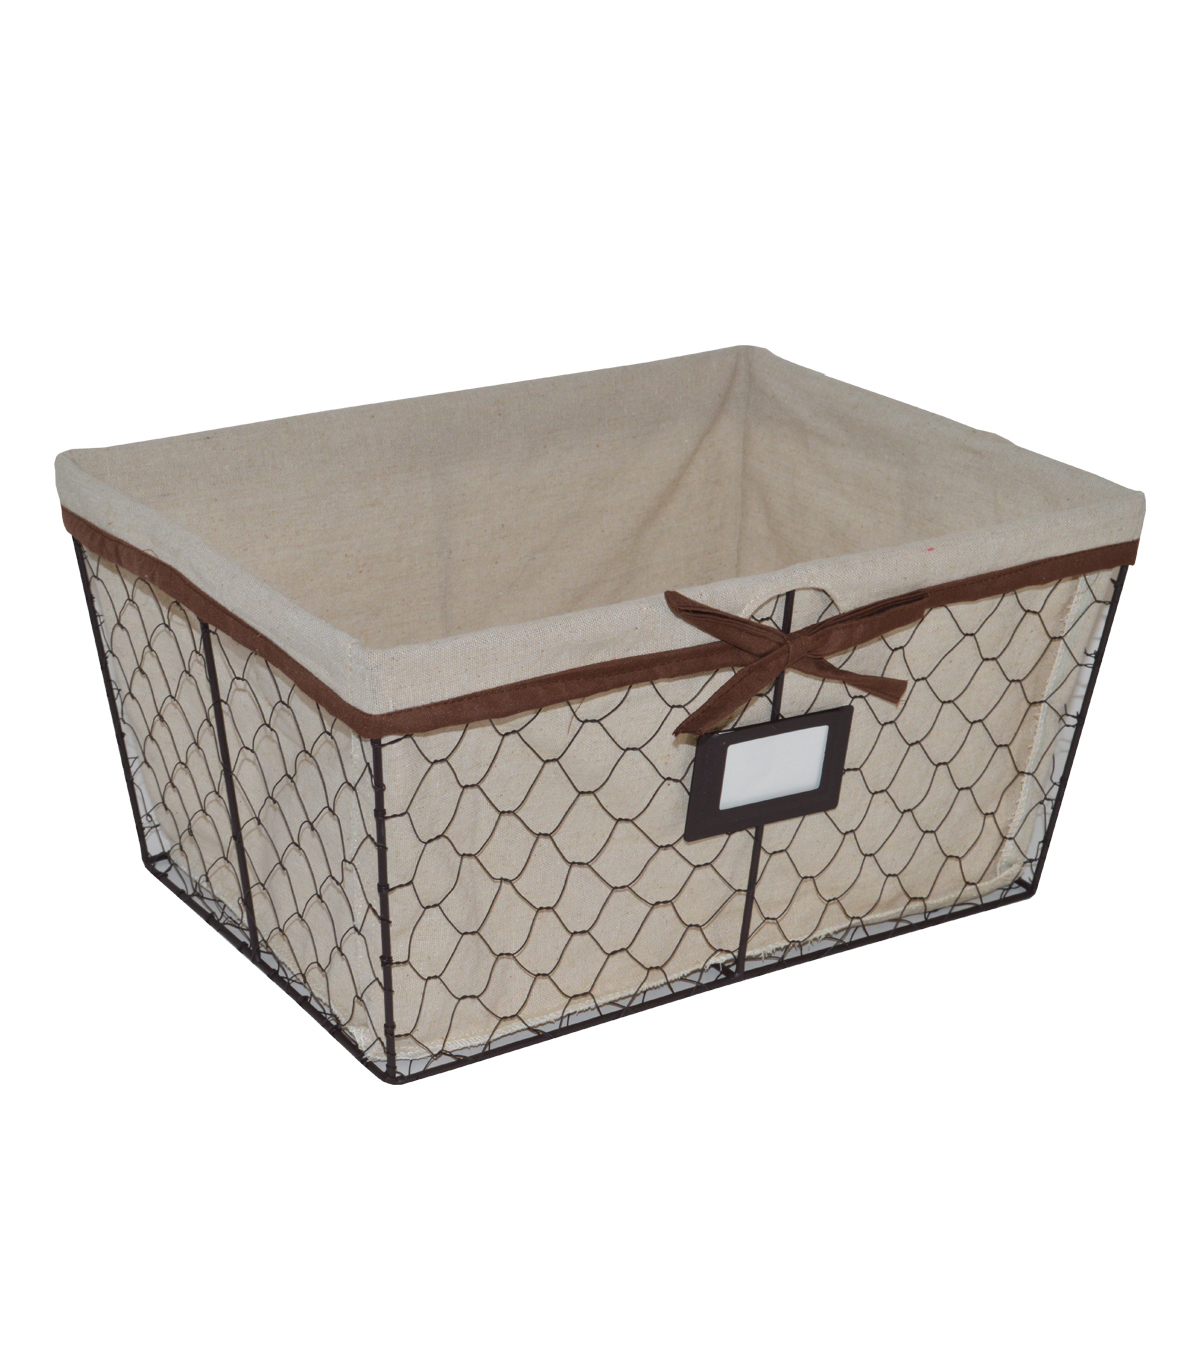 Farm Storage Medium Lined Chicken Wire Basket